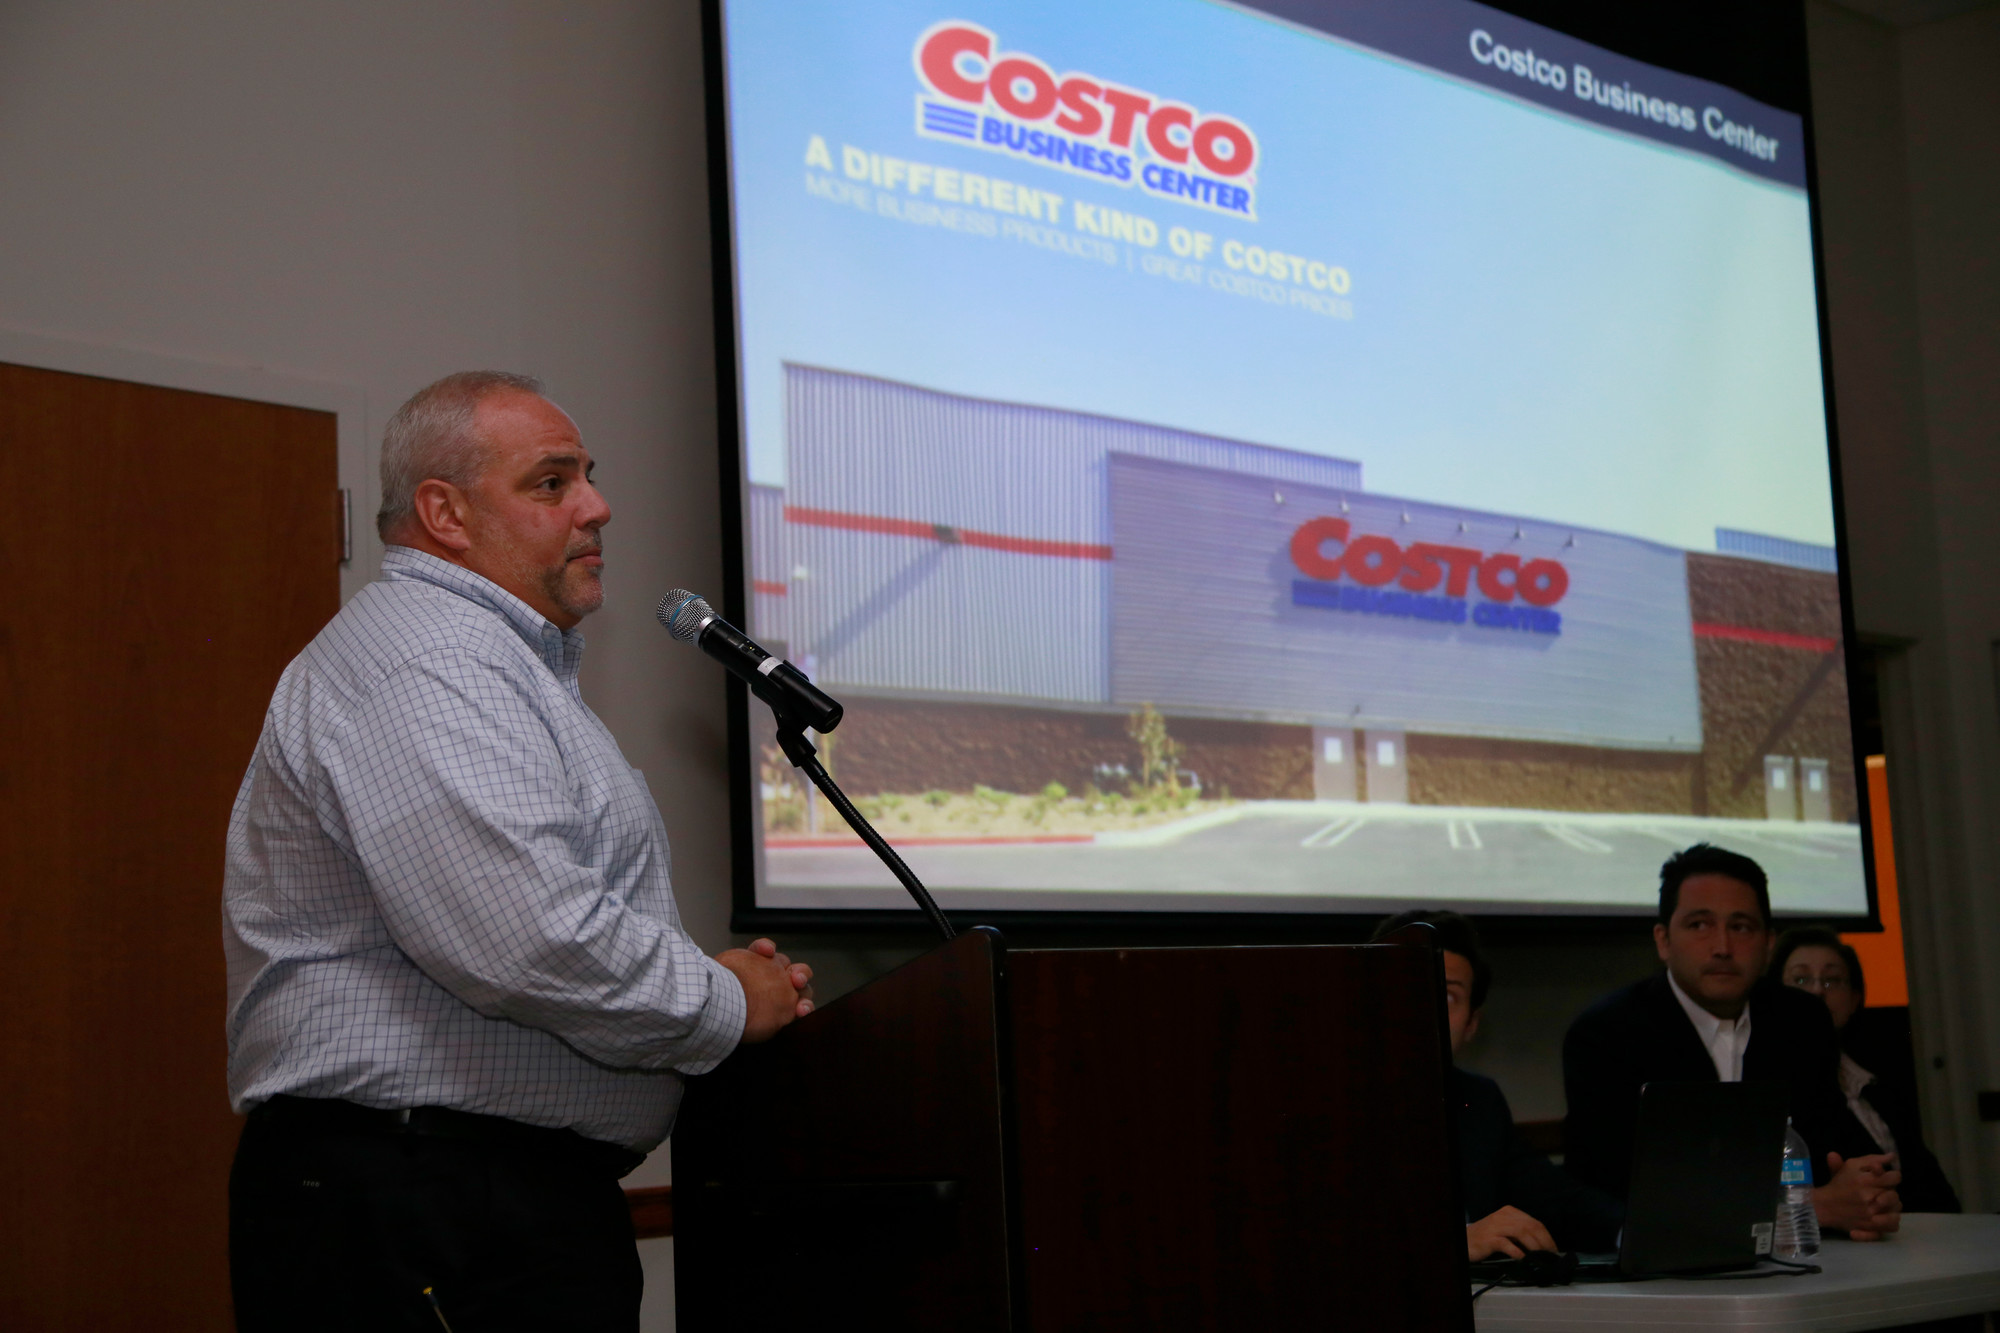 Joe Montesano, left, a representative of Costco, explained the impact that the retailer would have on the community.